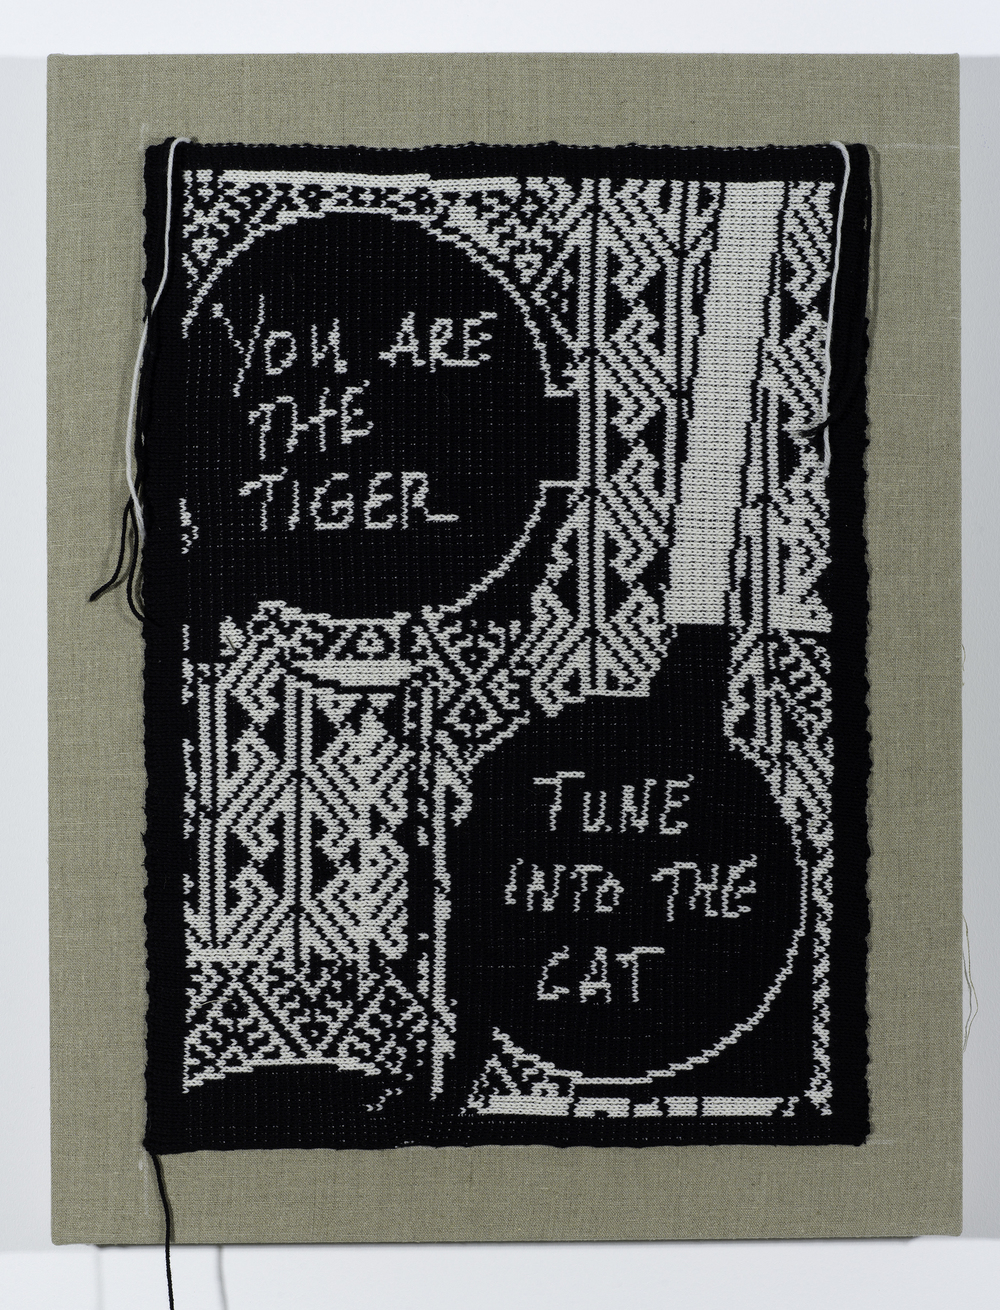 Tune into the cat, 2014